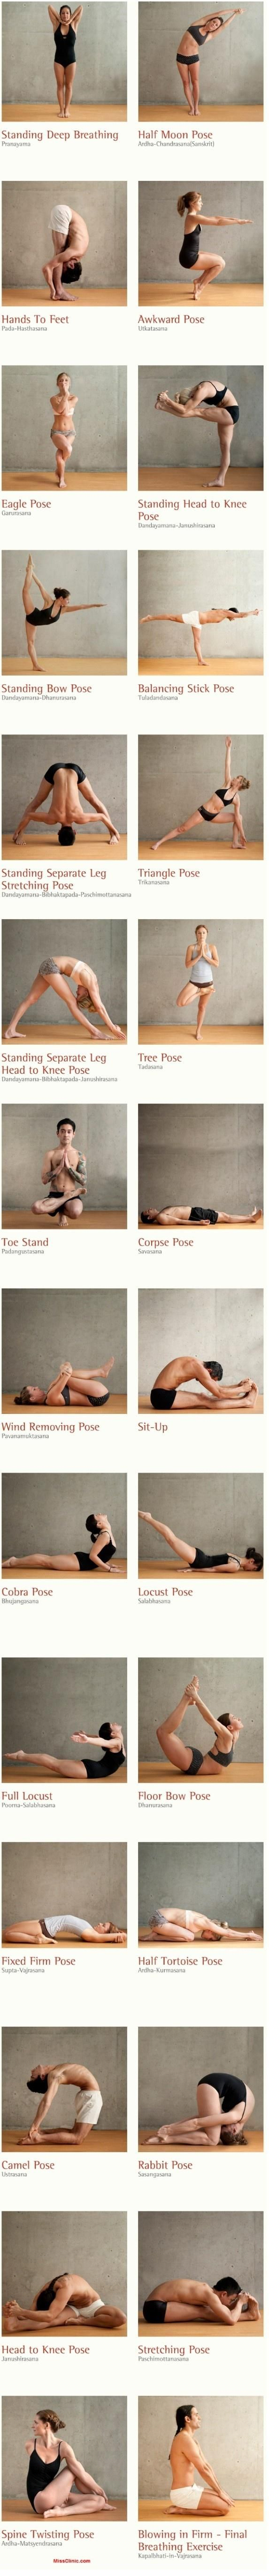 yoga poses! I can do the corpse pose!! As for the others well.......